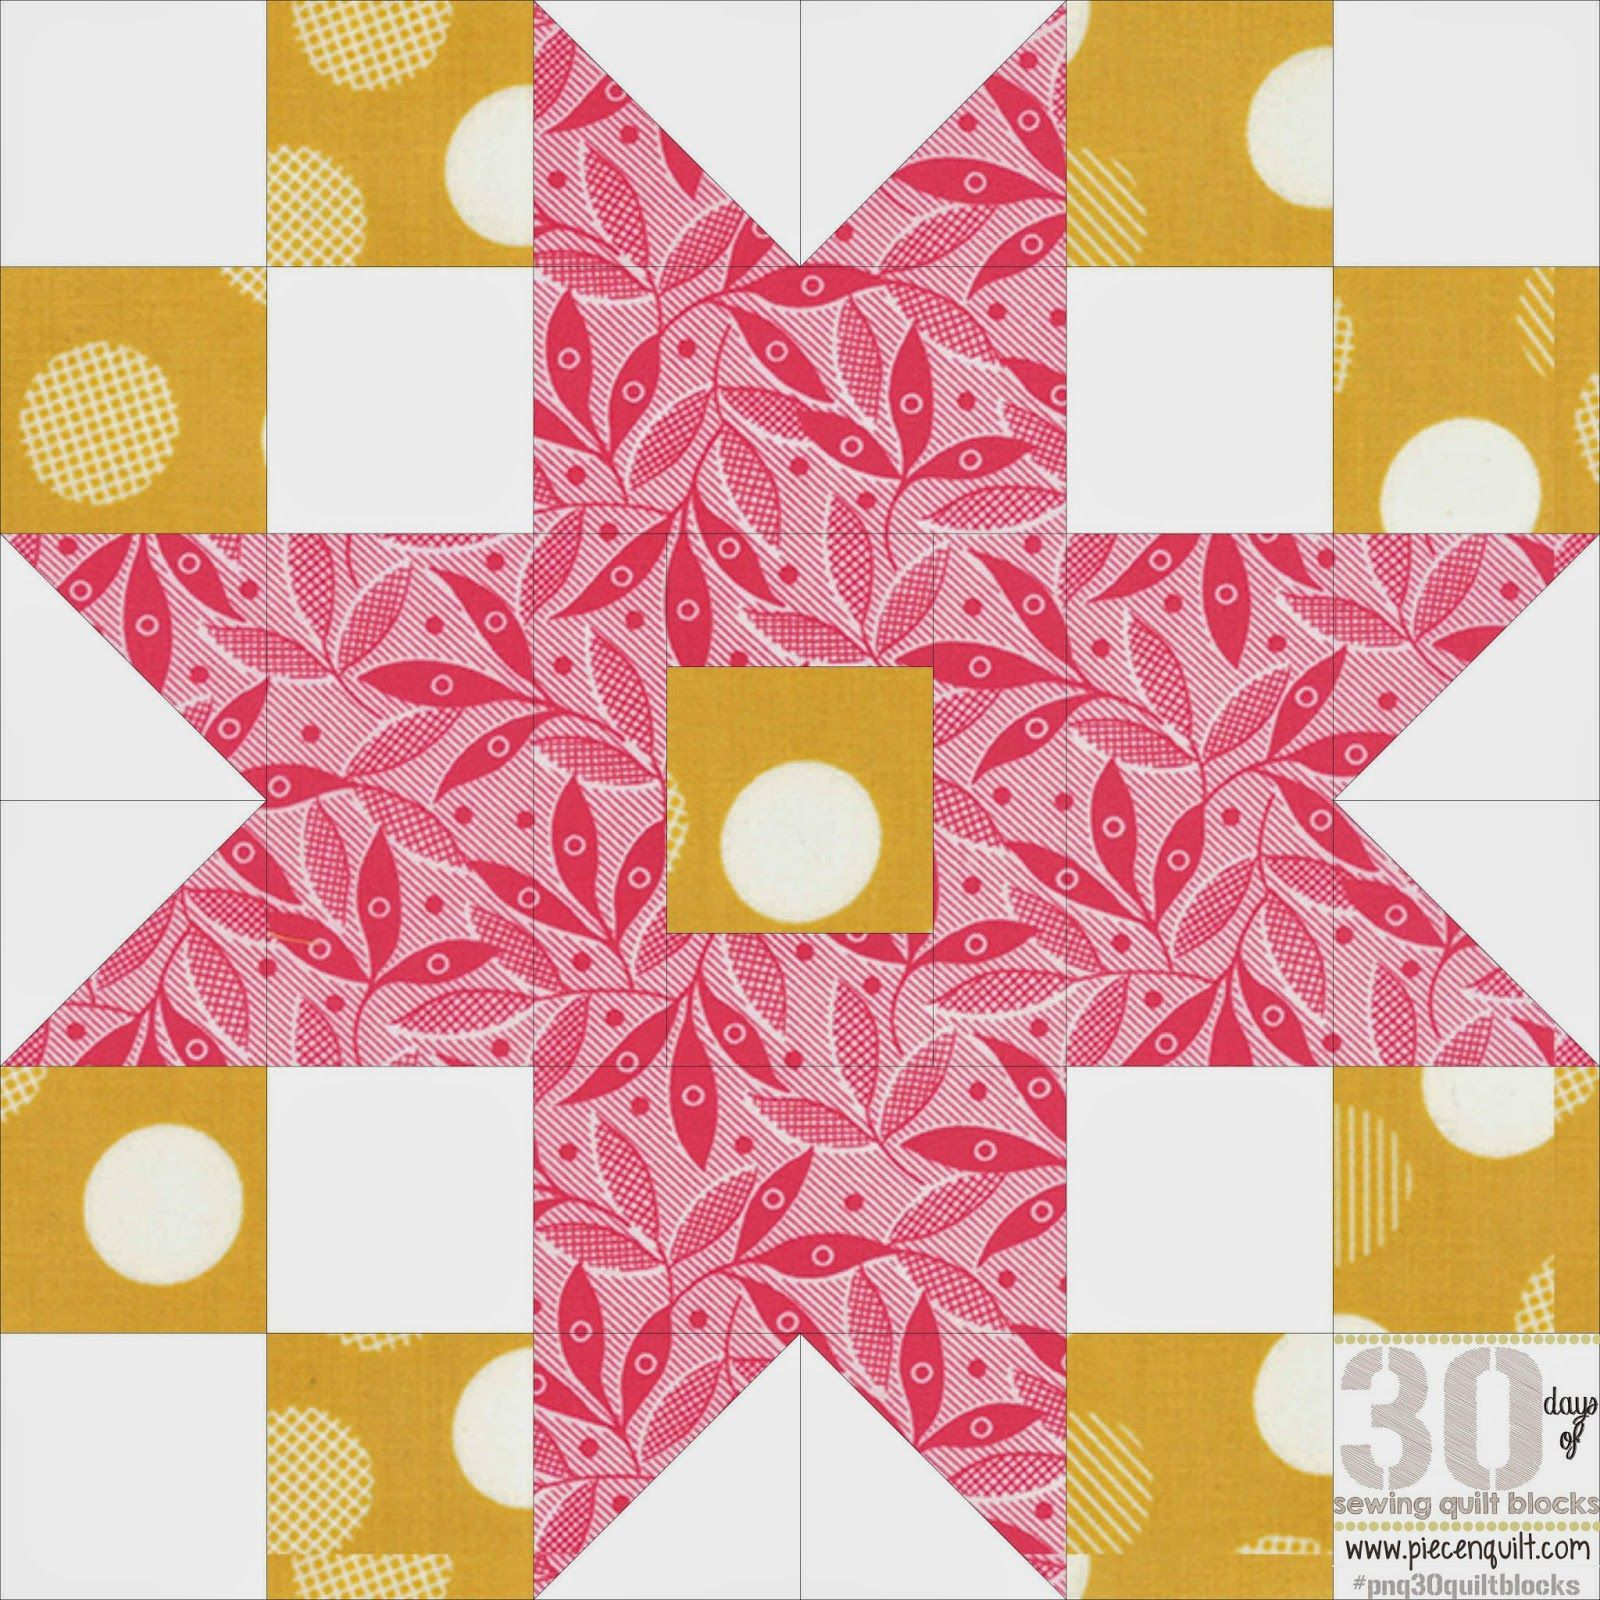 Piece N Quilt: How to: Owl Quilt Block - 30 Days of Sewing Quilt Blocks